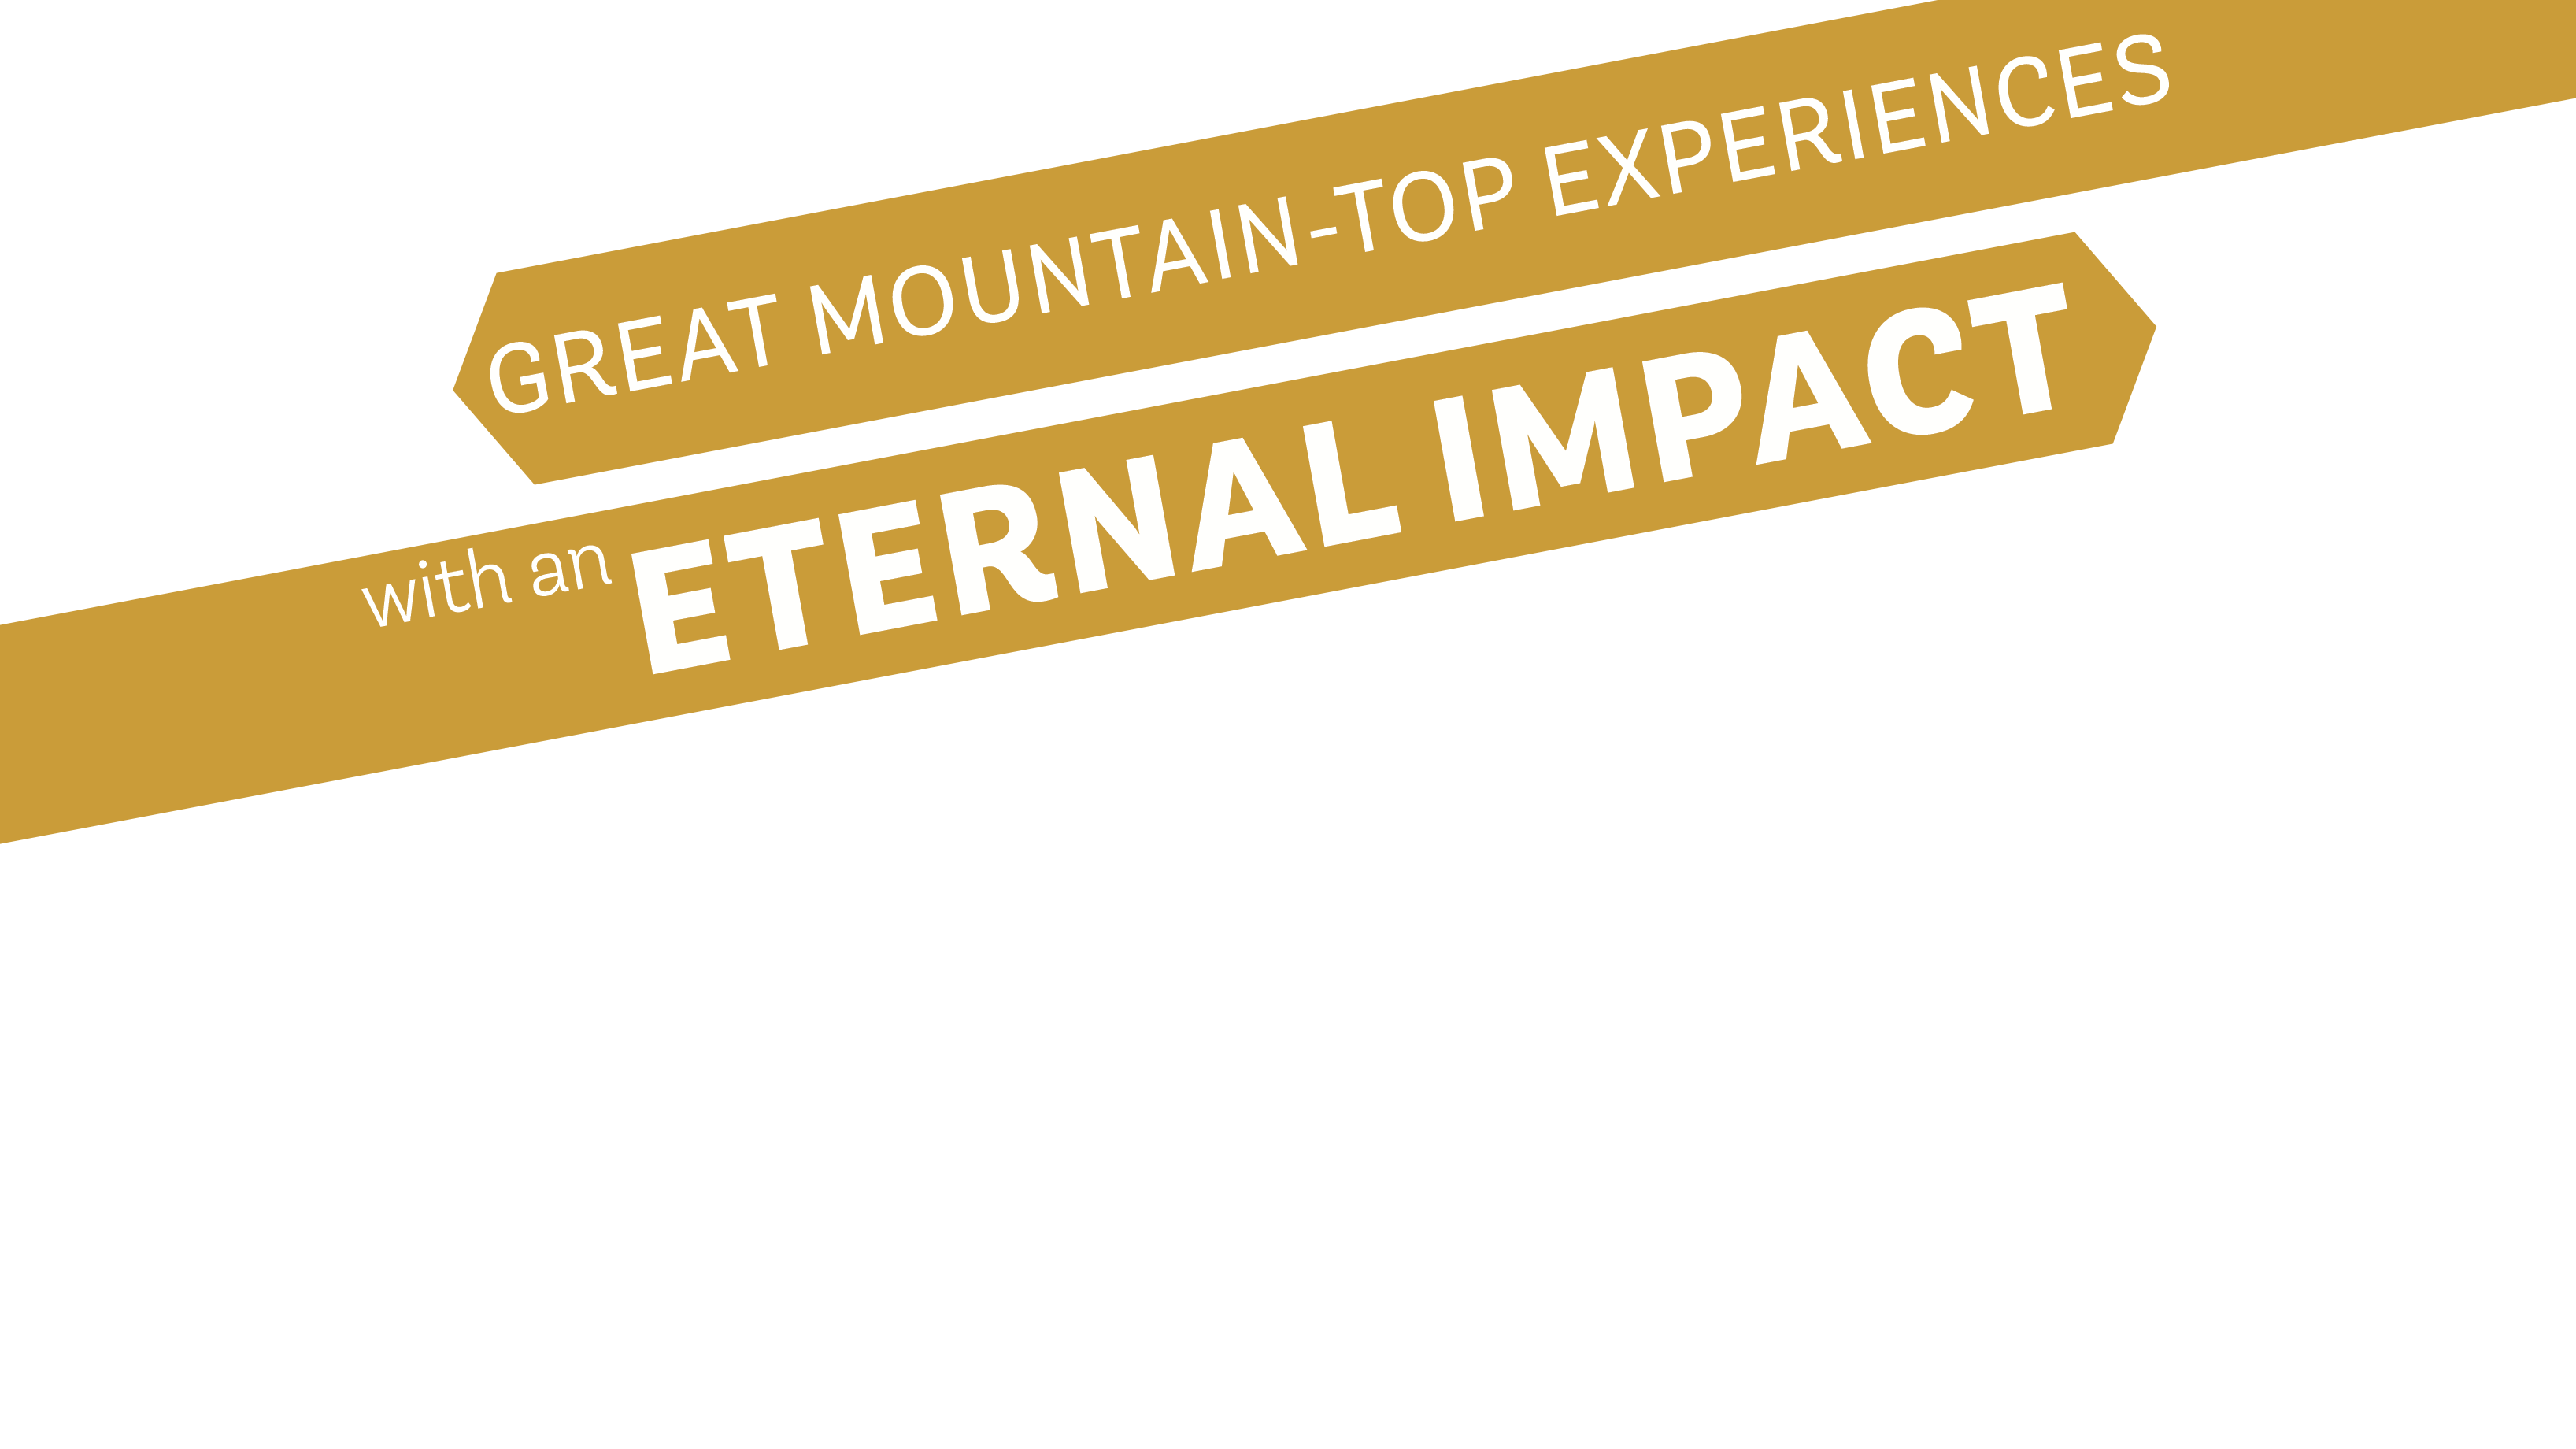 Great Mountain Top Experiences with an Eternal Impact